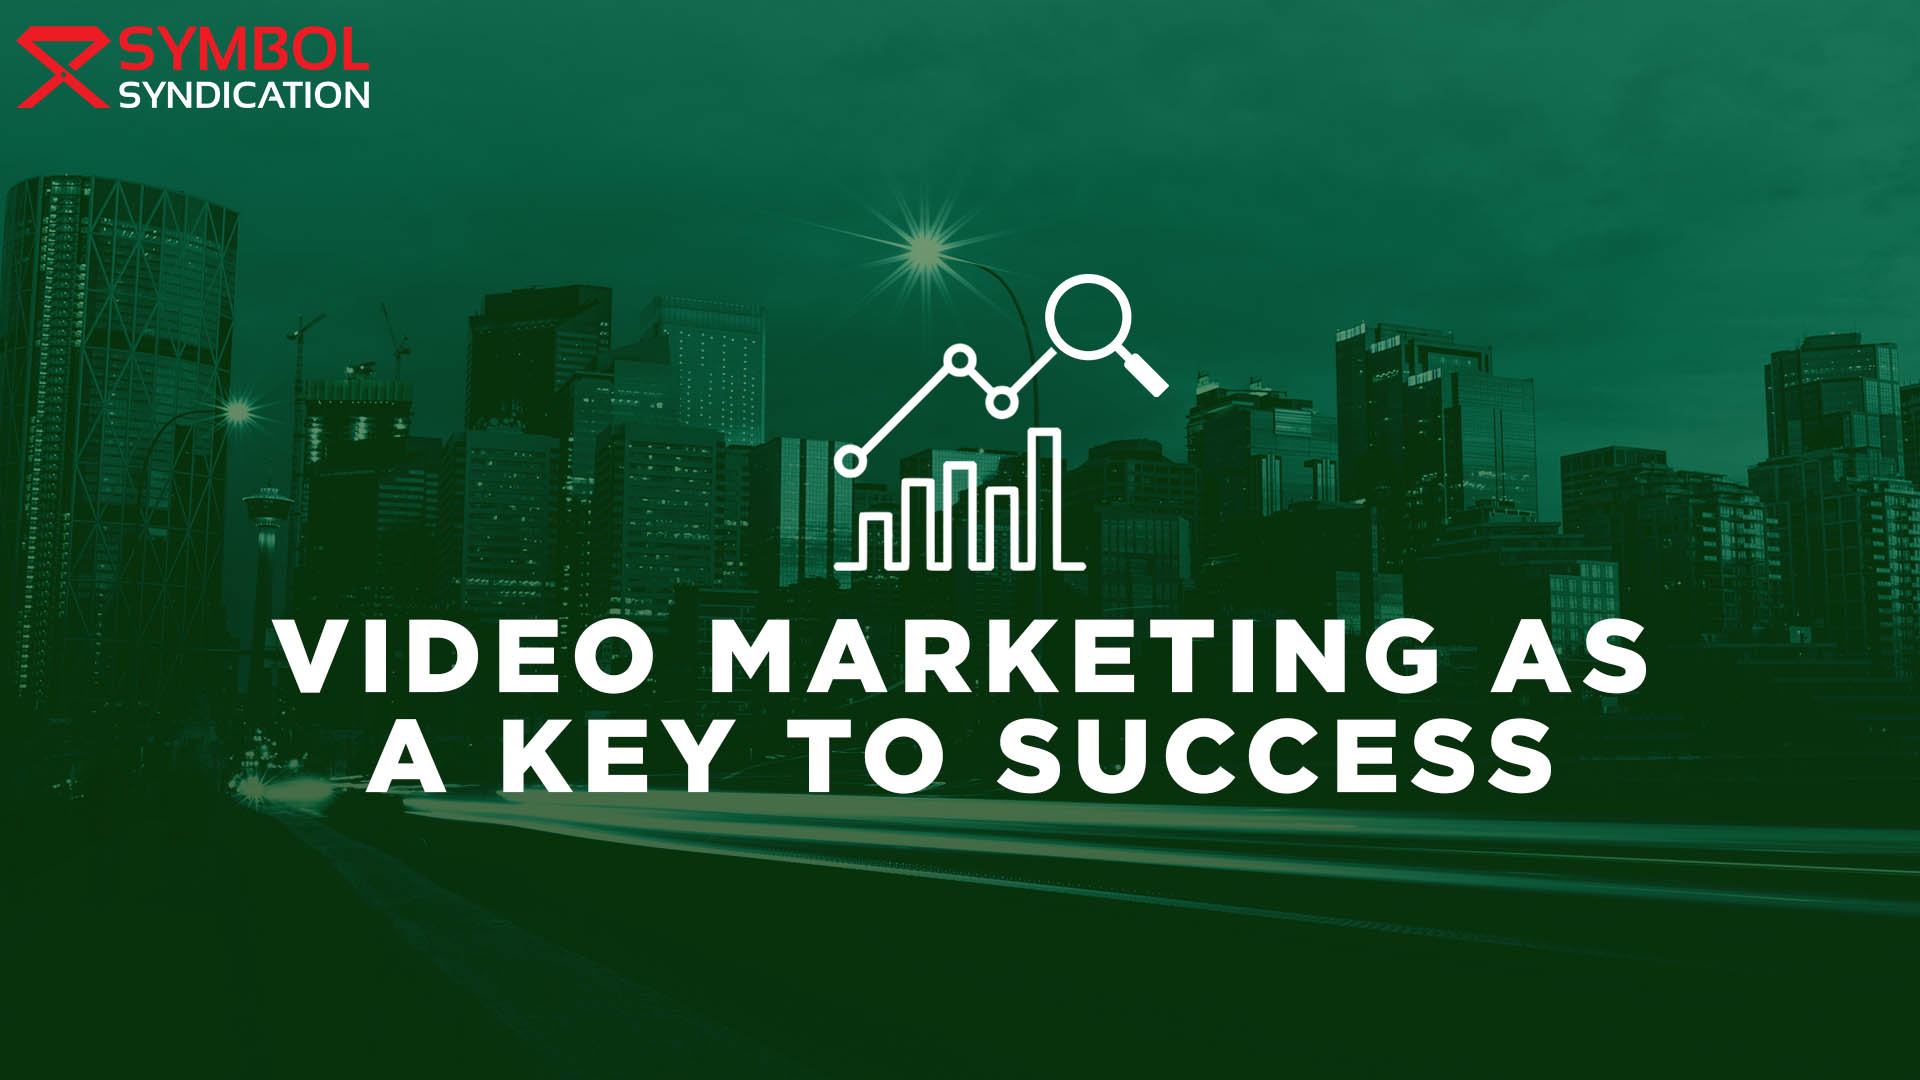 video marketing as a key to success banner